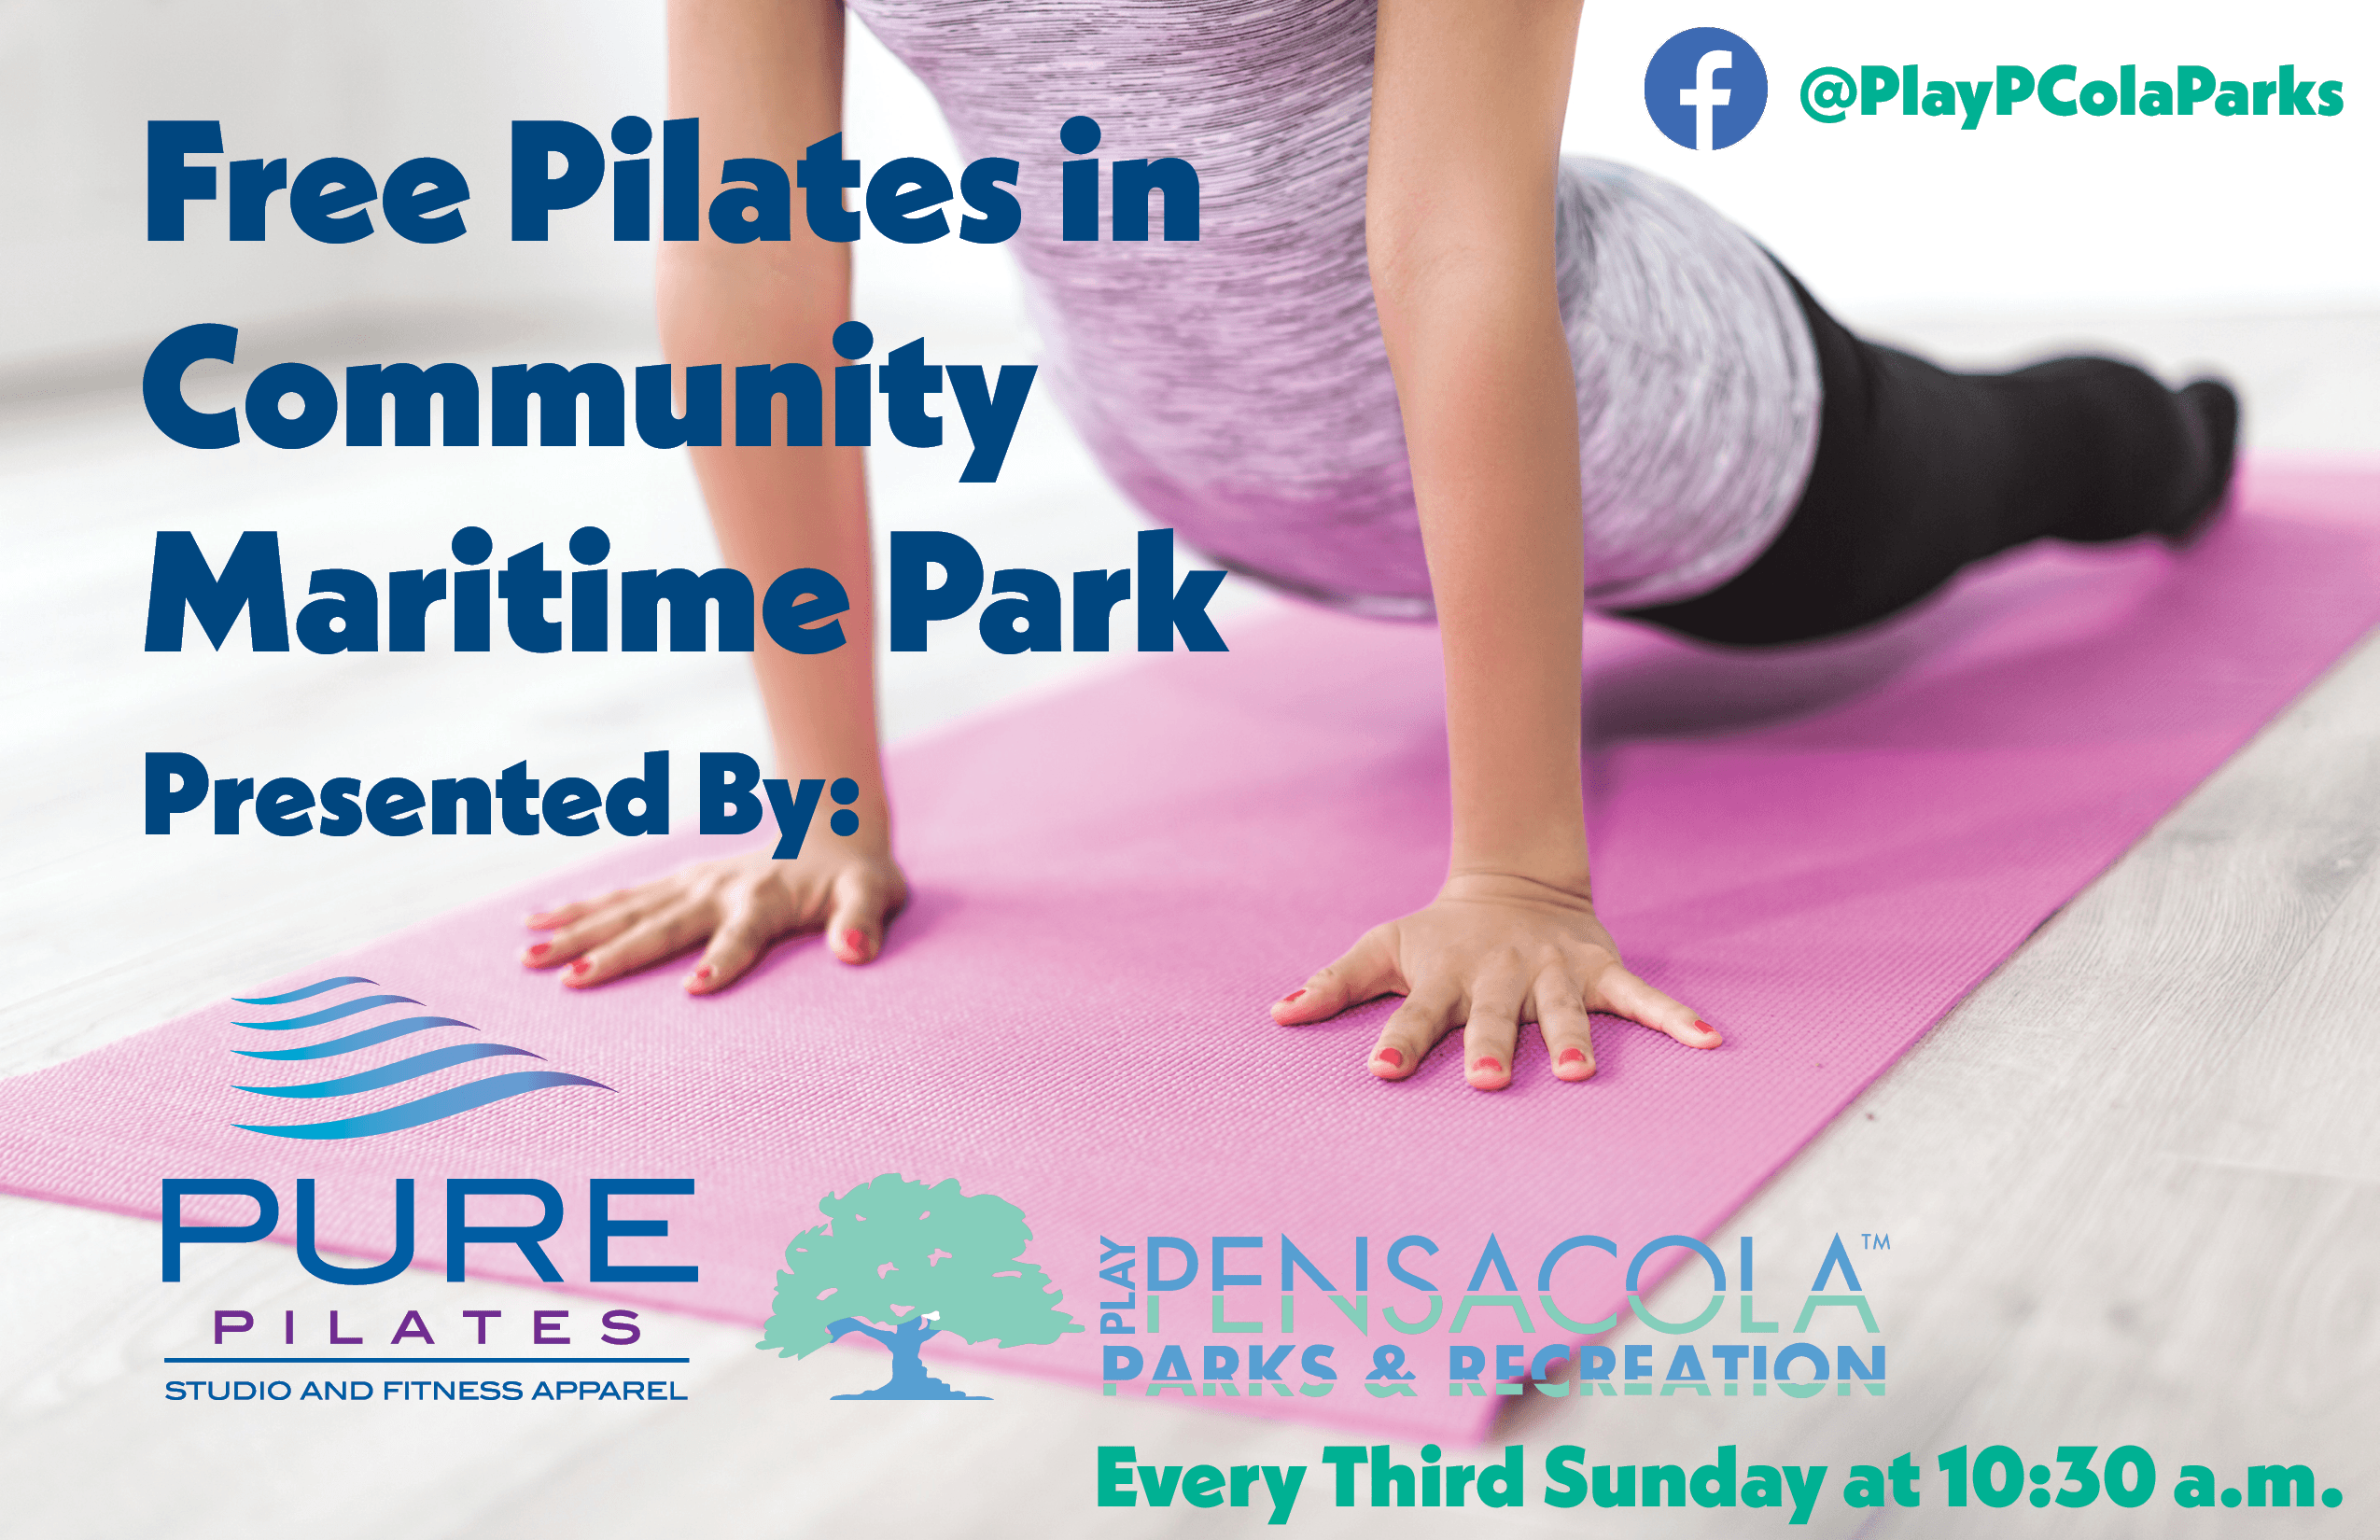 Free Pilates in Community Maritime Park